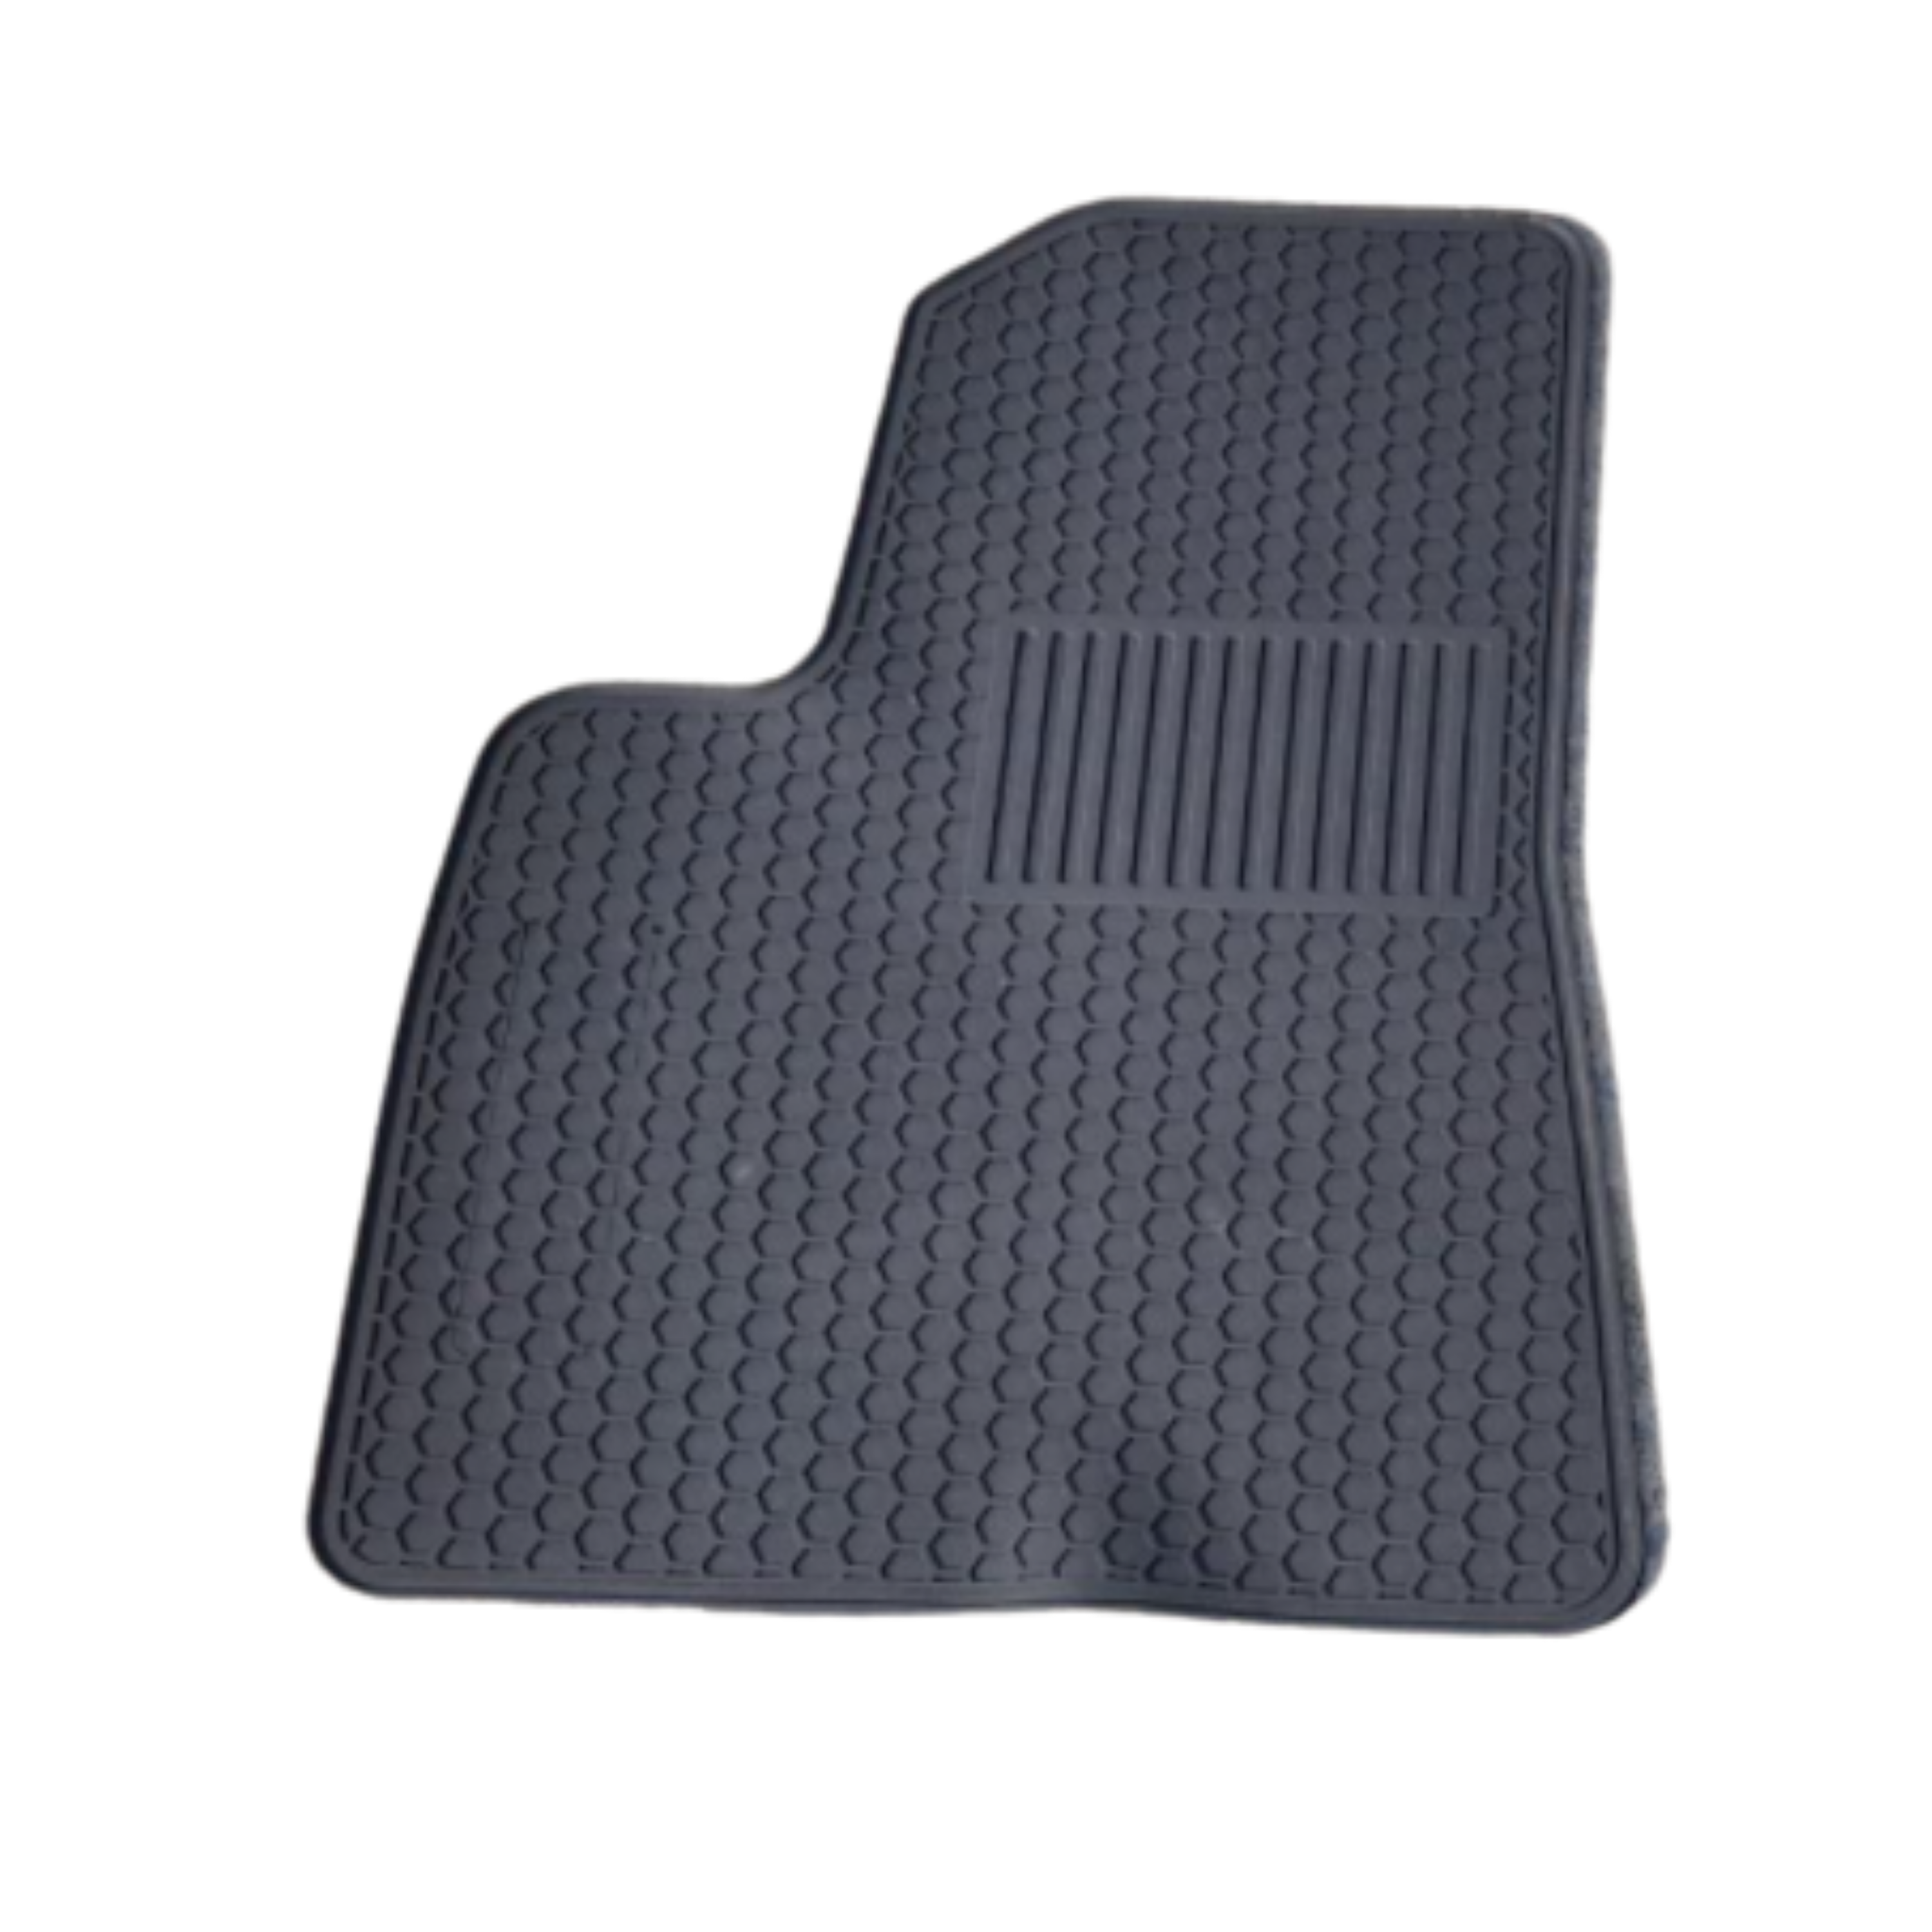 rubber floor mats for tesla model 3 australia